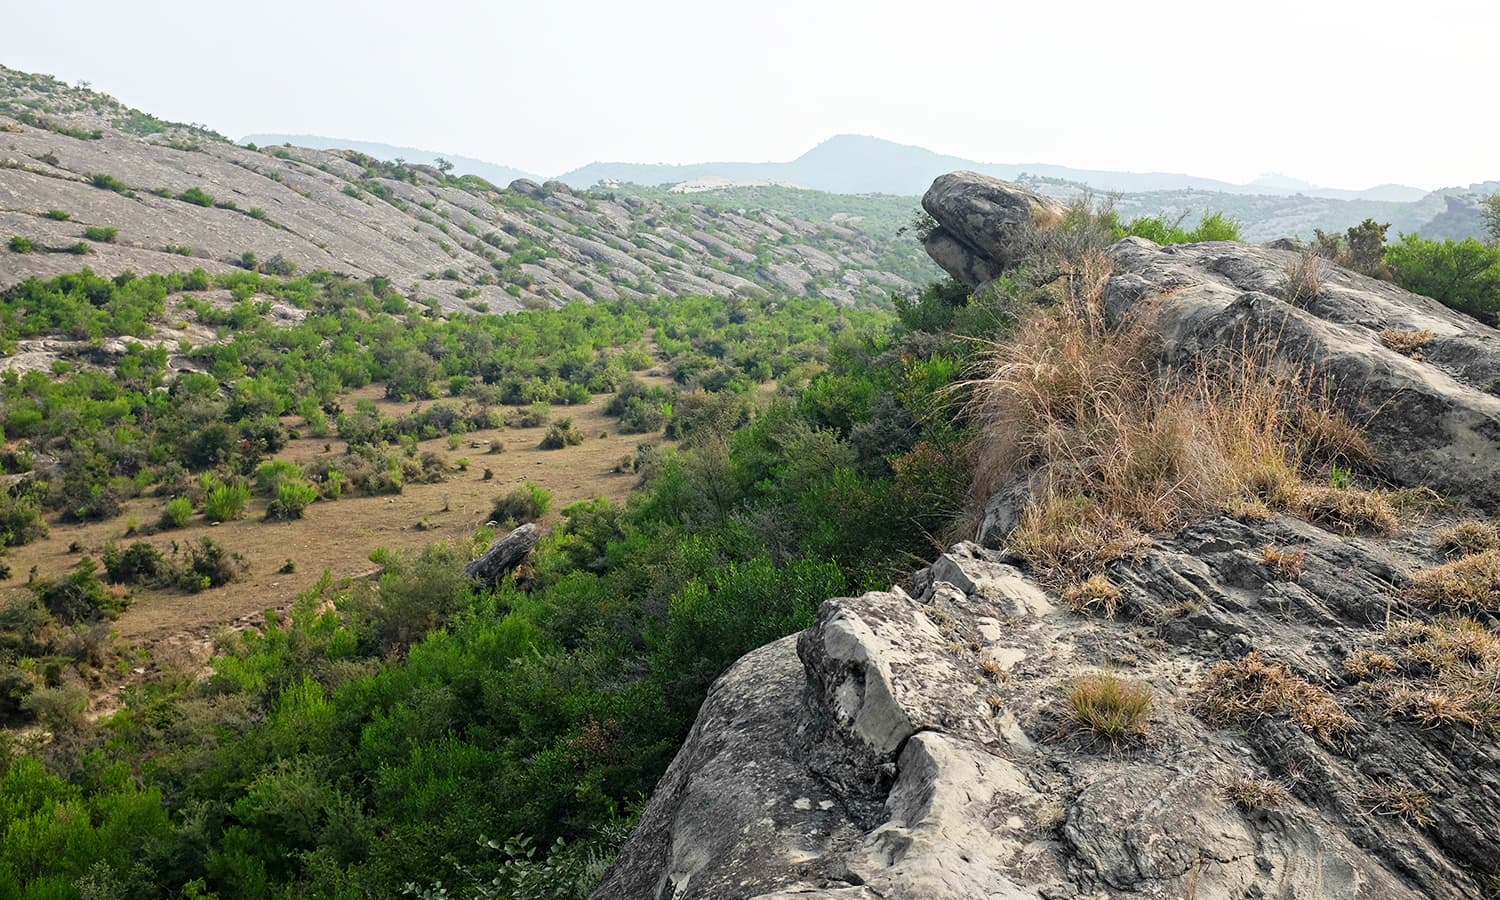 I navigate through ridges and gorges.